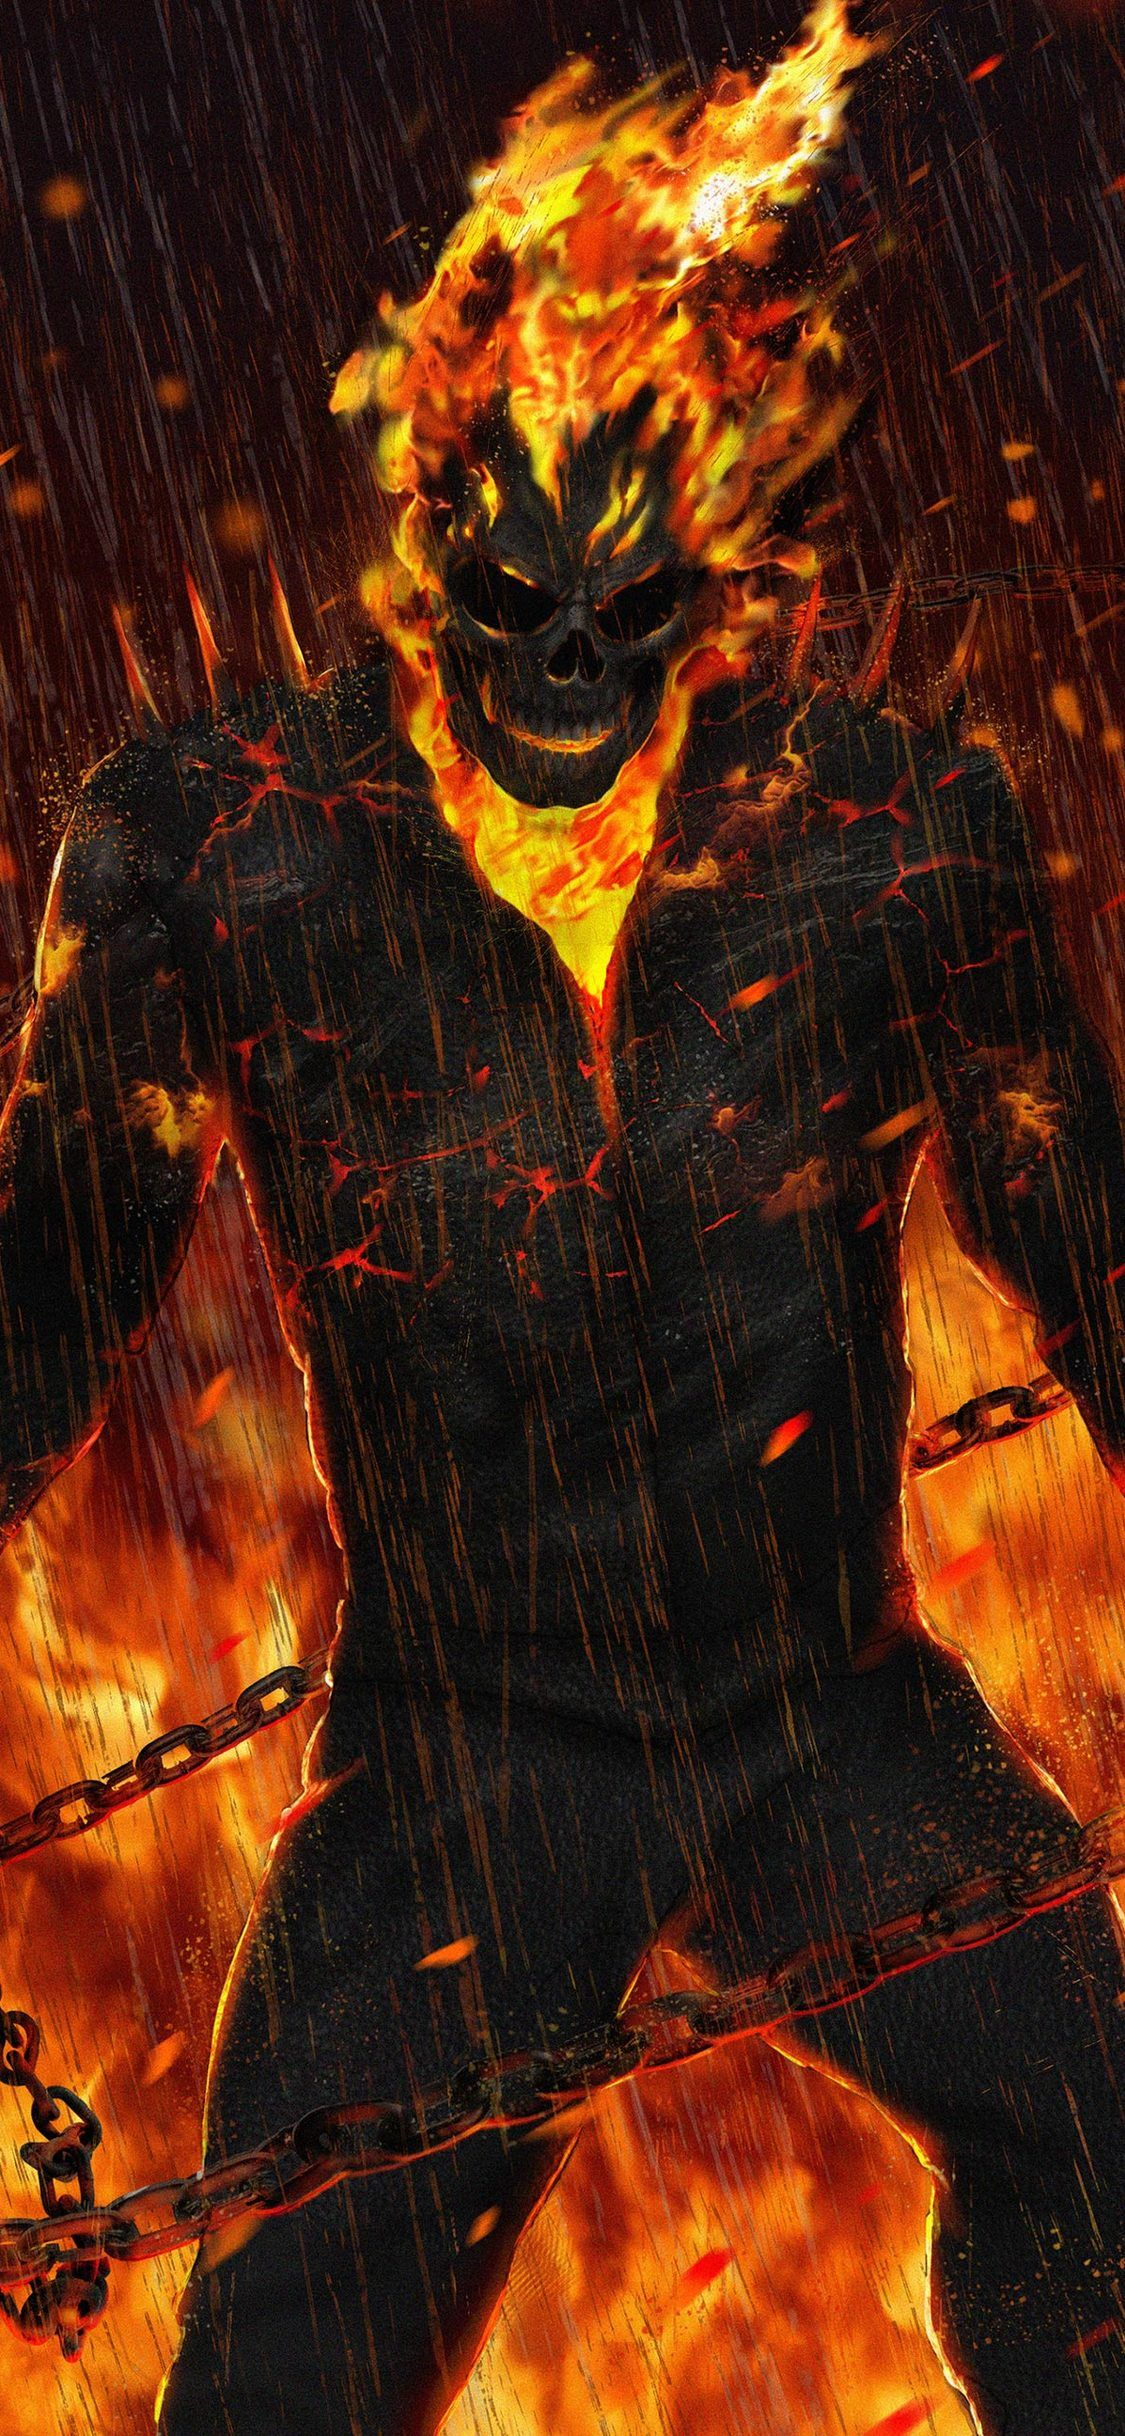 ghost rider wallpaper 177 - 1125x2436